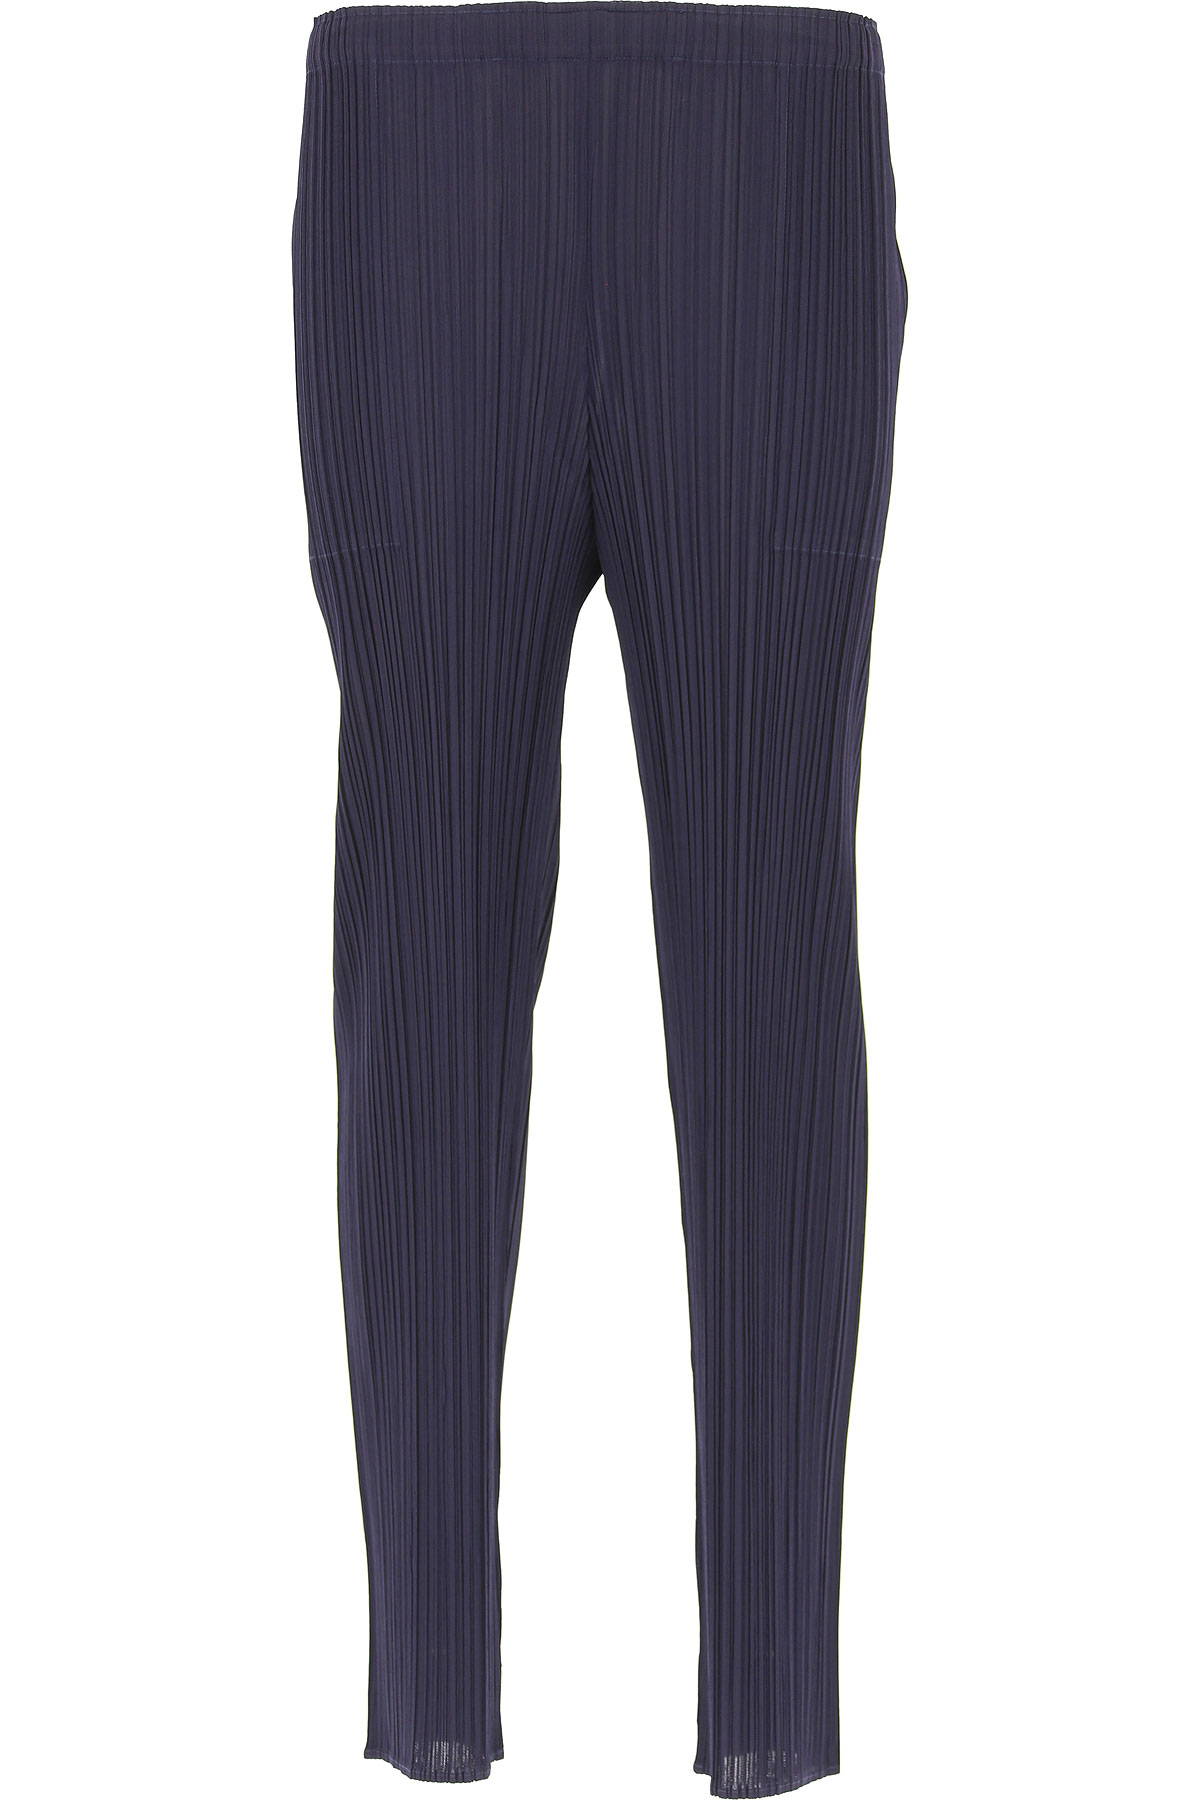 Image of Issey Miyake Pants for Women, navy, polyester, 2017